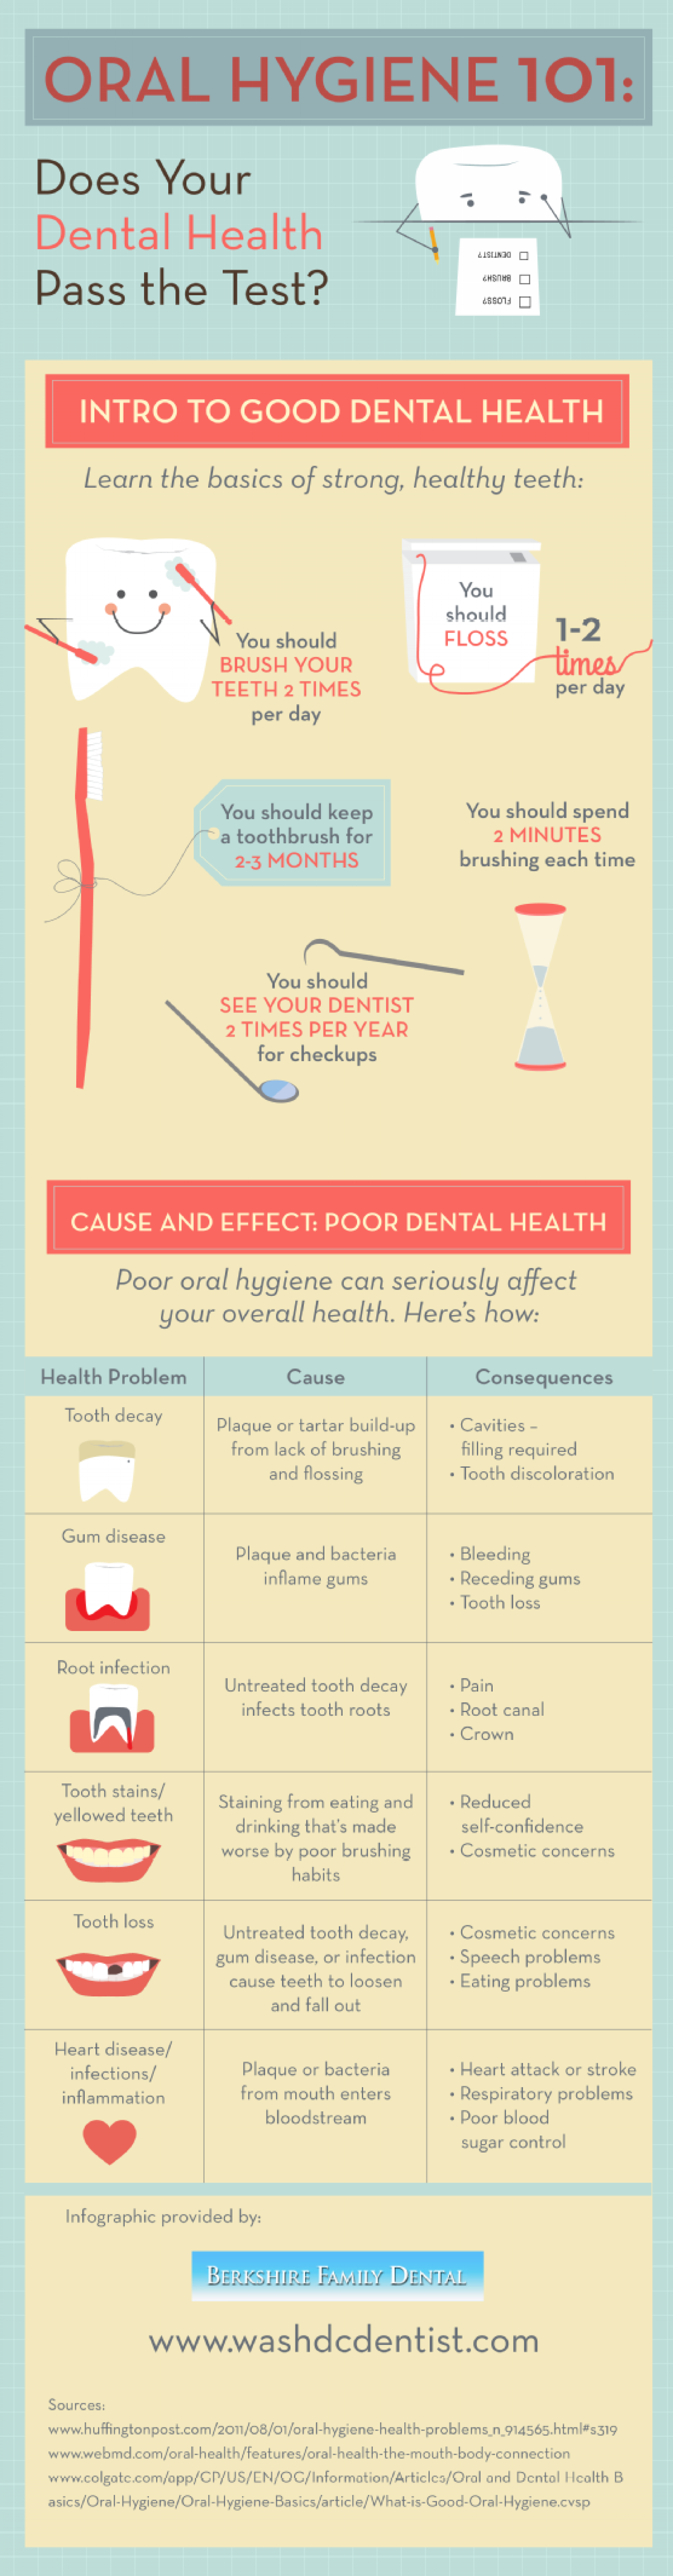 Oral Hygiene 101: Does Your Dental Health Pass the Test? | Visual.ly